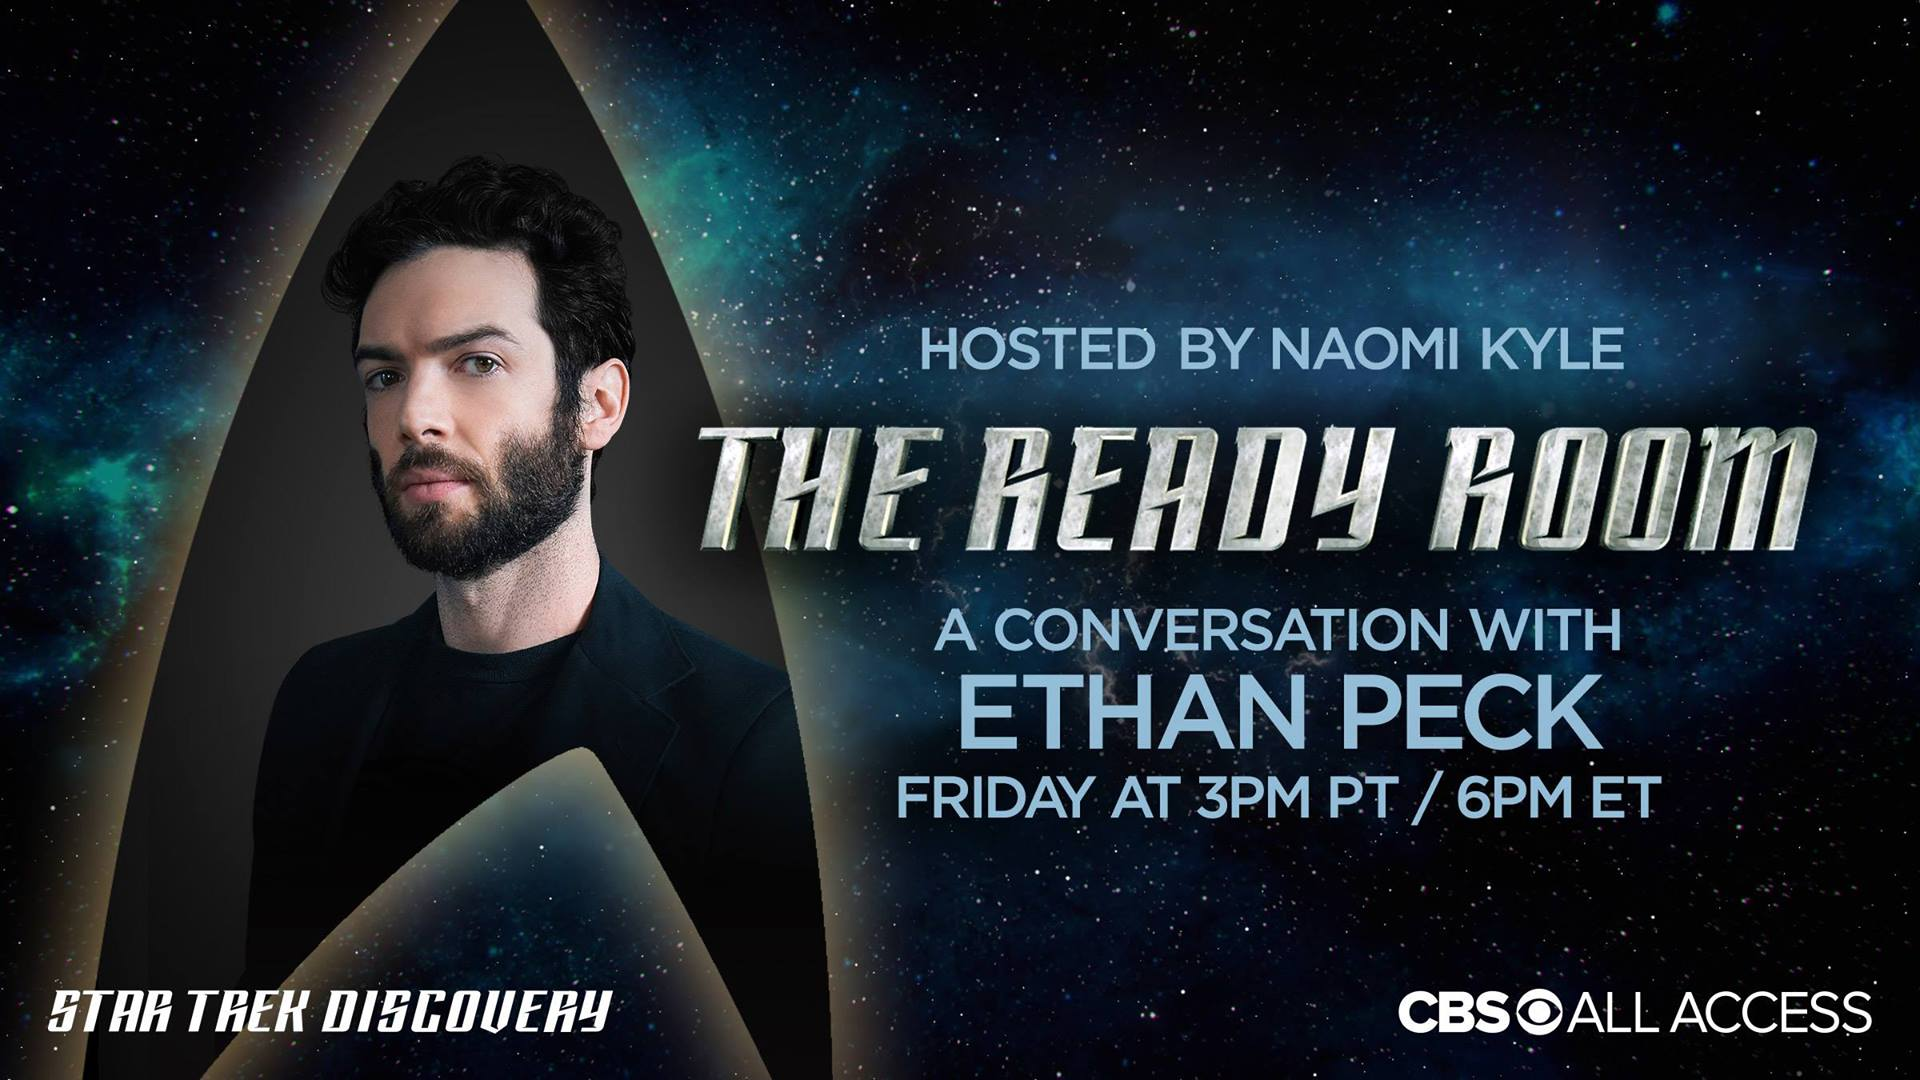 Star Trek Discovery: Ethan Peck ospite a 'The Ready Room'